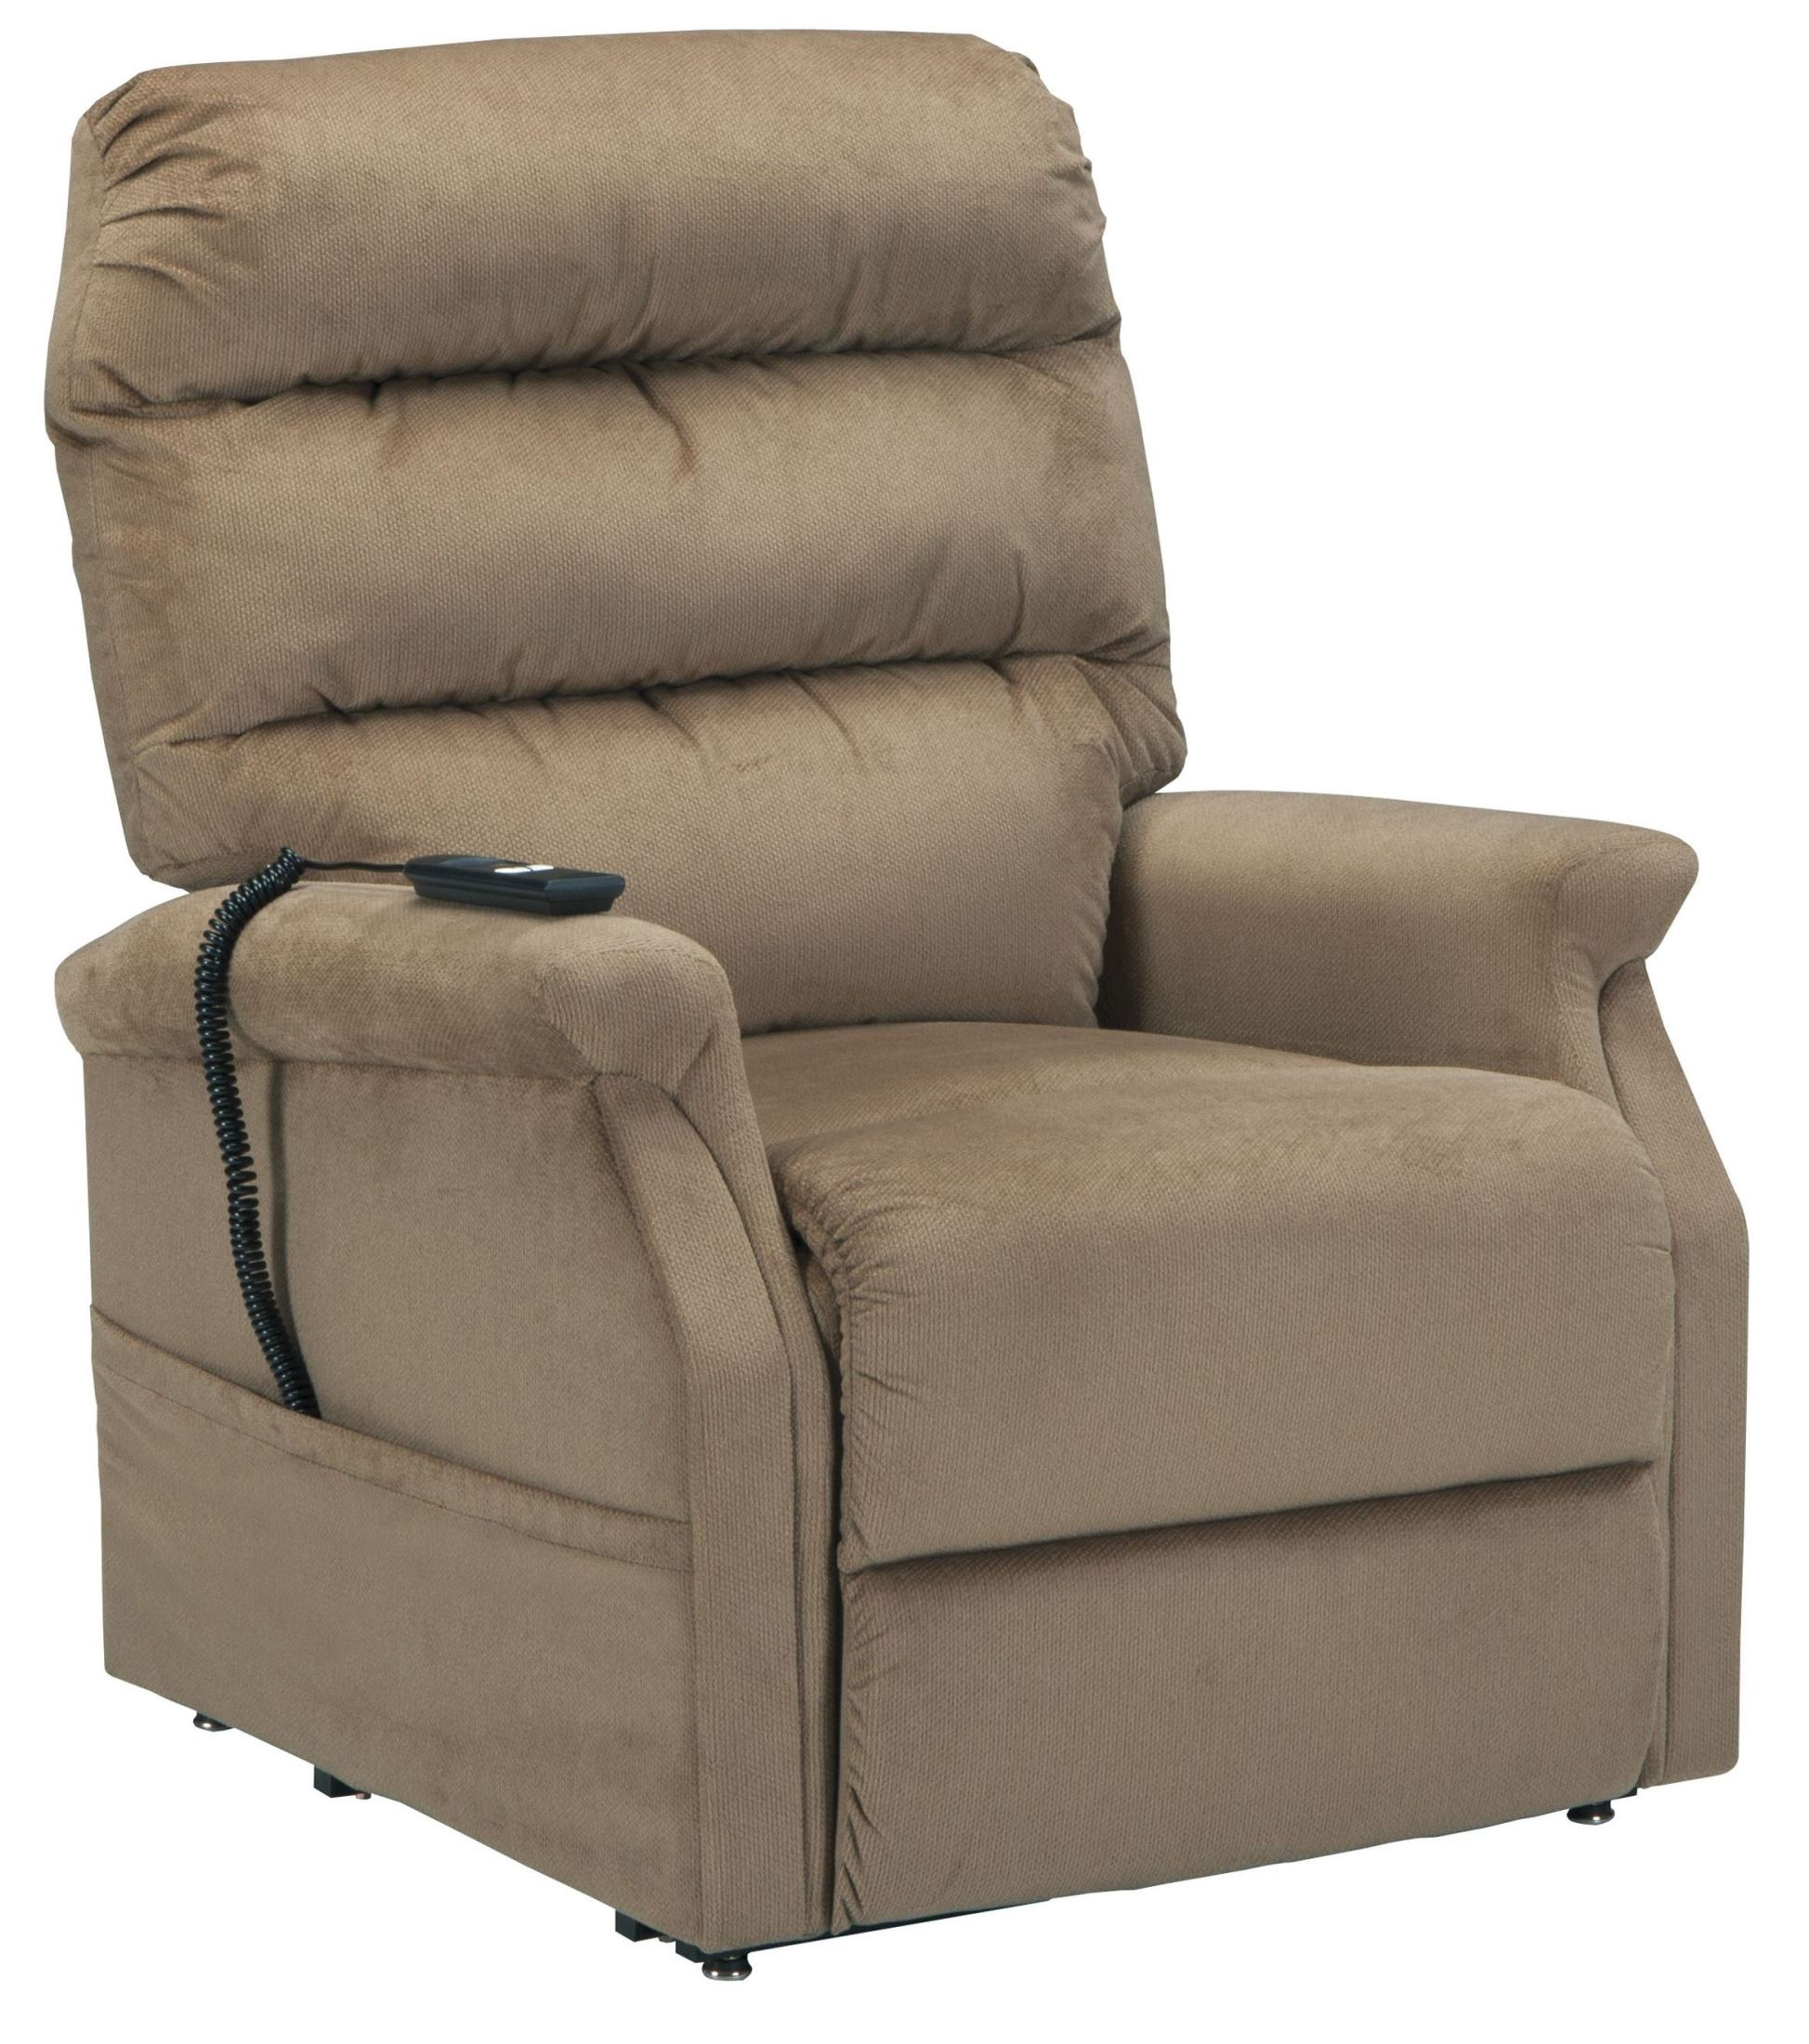 Lift Chair Recliners Brenyth Mocha Power Lift Recliner From Ashley 7460312